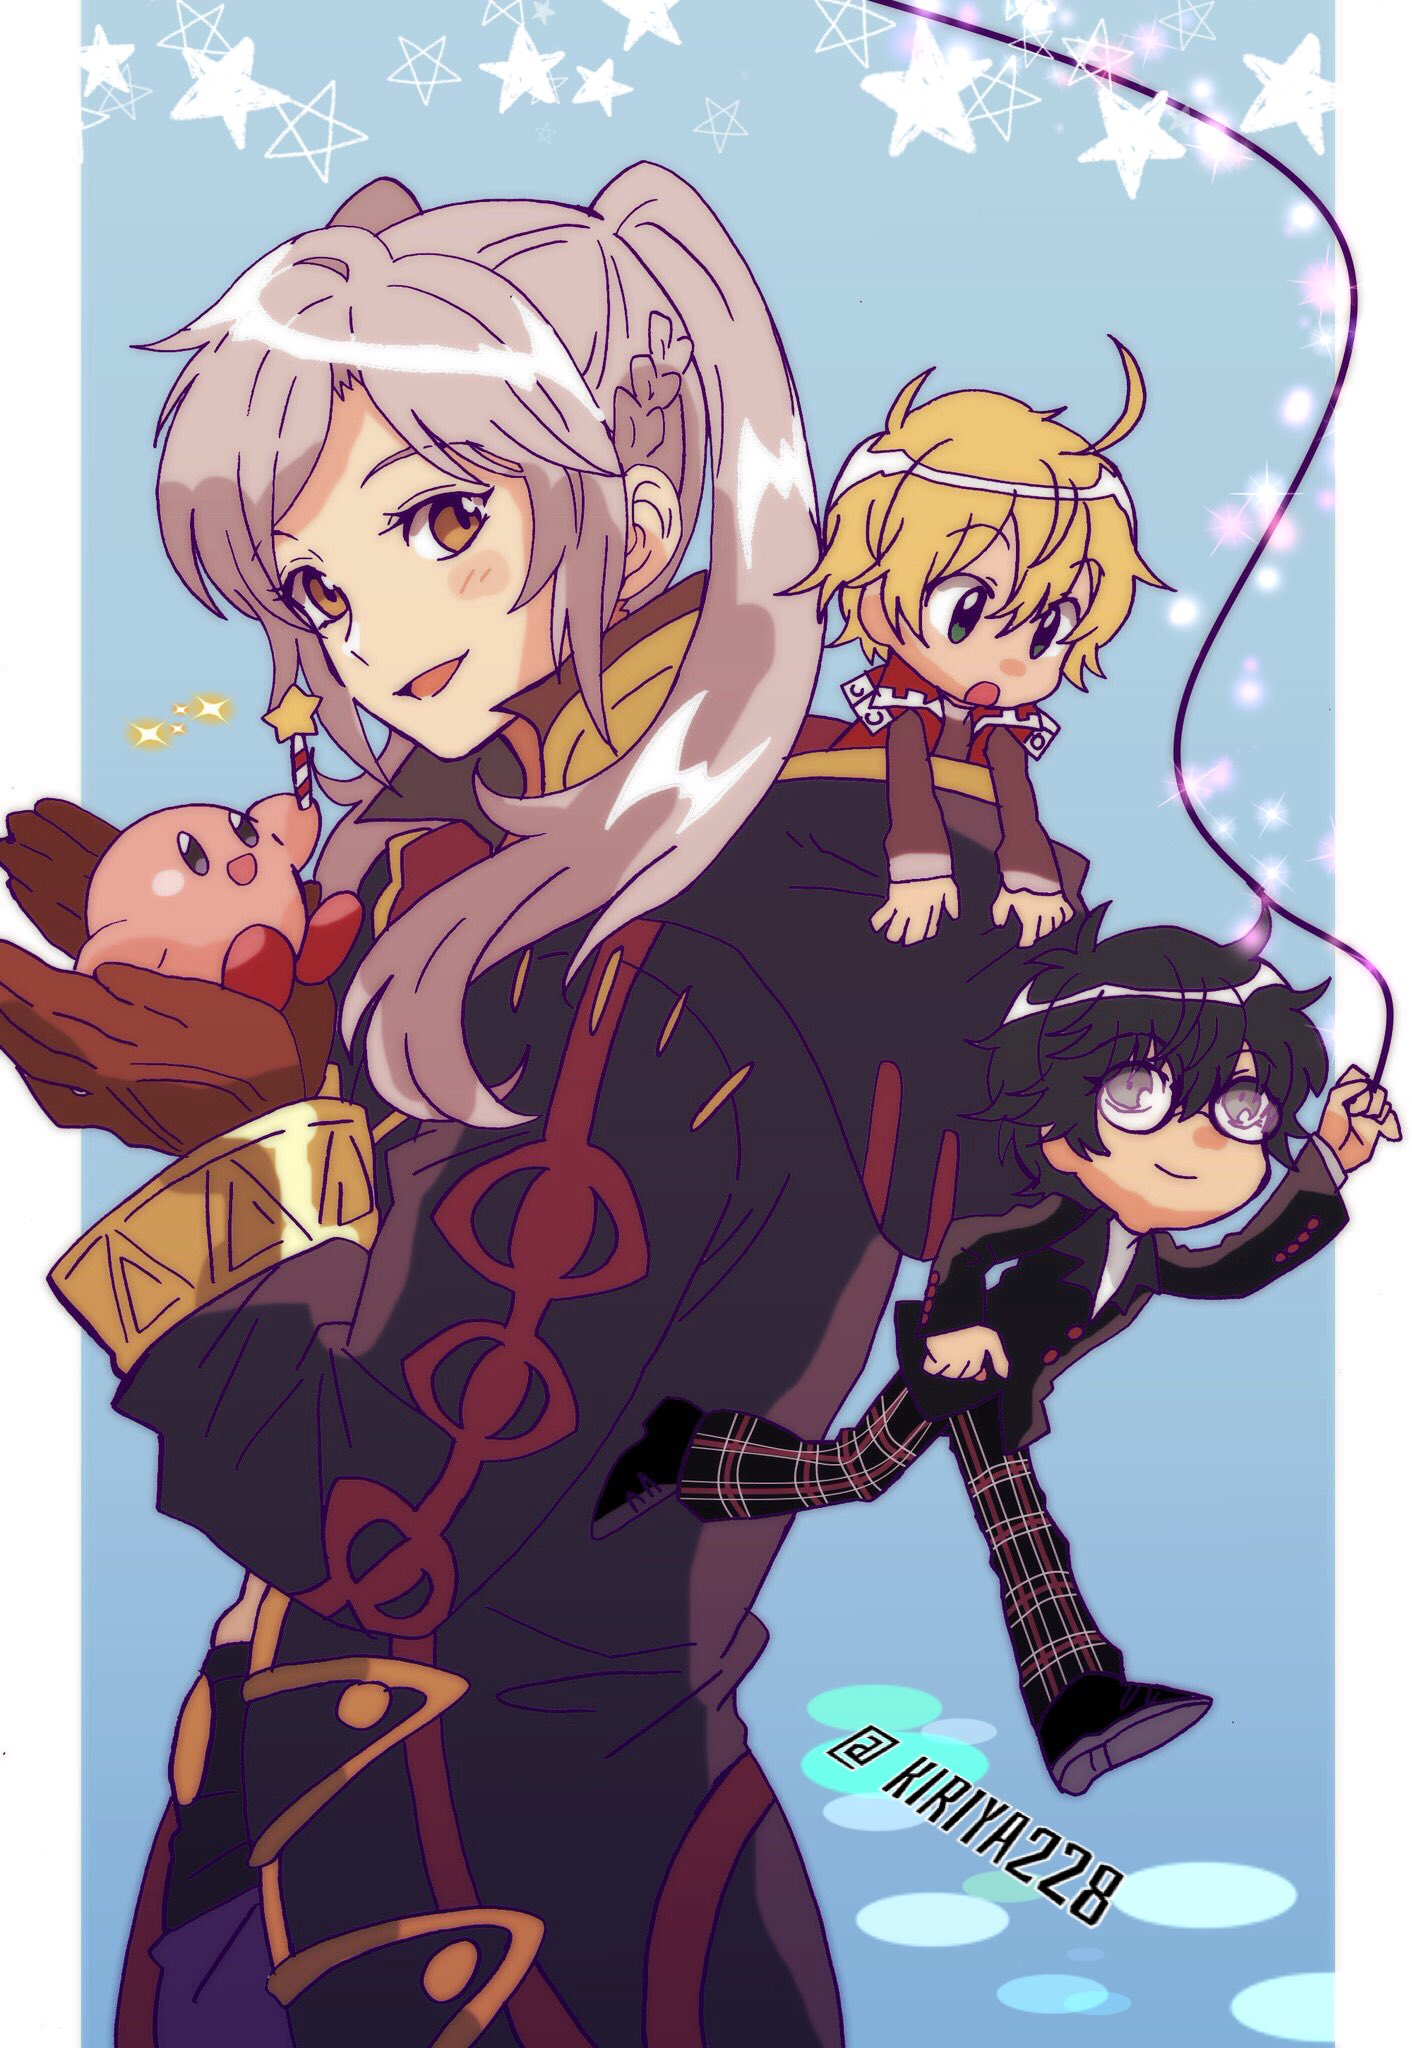 1girl 1other 2boys amamiya_ren atlus black_hair blonde_hair blue_eyes blush chibi coat female_my_unit_(fire_emblem:_kakusei) fire_emblem fire_emblem:_kakusei fire_emblem_awakening fire_emblem_heroes glasses gloves hal_laboratory_inc. highres hoshi_no_kirby human intelligent_systems kirby kirby_(series) kiriya_(552260) kurusu_akira long_hair megami_tensei monolith_soft multiple_boys my_unit_(fire_emblem:_kakusei) nintendo open_mouth pants persona persona_5 pink_puff_ball plaid plaid_pants reflet robin_(fire_emblem) robin_(fire_emblem)_(female) school_uniform short_hair shulk shuujin_academy_uniform smile sora_(company) star super_smash_bros. super_smash_bros._ultimate super_smash_bros_for_wii_u_and_3ds twintails uniform white_hair xenoblade_(series) xenoblade_1